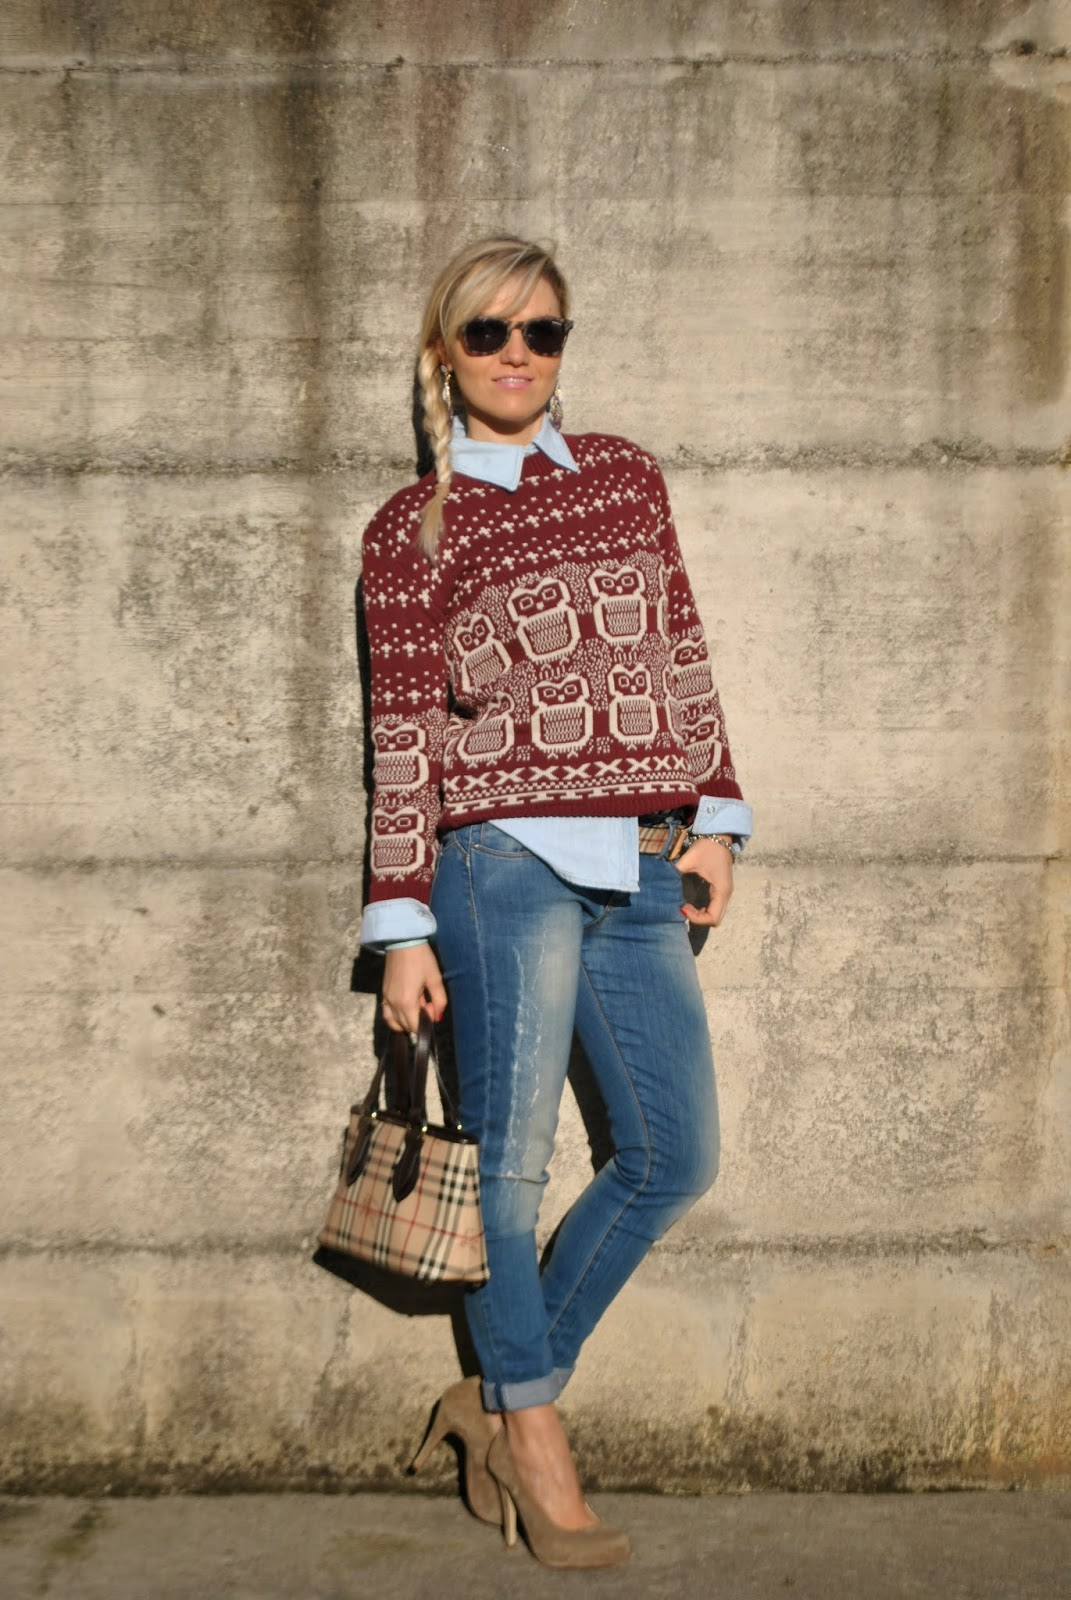 outfit maglione,camicia denim,jeans skinny,borsa burberry,cintura burberry,abbinamento jeans e tacchi,acconciatura treccia,mariafelicia magno fashion blogger,colorblock by felym,fashion blog italiani,outfit gennaio 2015 abbinare maglione e camicia,outfit burgundy, marsala outfit marsala come abbinare il marsala abbinamenti marsala  abbinare maglione e camicia,outfit burgundy outfit jeans outfit camicia e maglione outfit jeans skinny abbinamenti jeans skinny jeans e tacchi come abbinare jeans e tacchi come abbinare jeans e maglione maglione gufi outfit burgundy come abbinare il bordeaux outfit jeans casual outfit da ufficio con jeans borsa burberry cintura burberry acconciatura treccia laterale how to wear jeans to work jeans and heels sewater and shirt how to wear jeans and heels how to wear shirt and sweater fashion bloggers italy italian fashion bloggers italian girls girls blonde girls braids burberry belt burberry bag outfit burberry outfit borsa burberry outfit cintura burberry